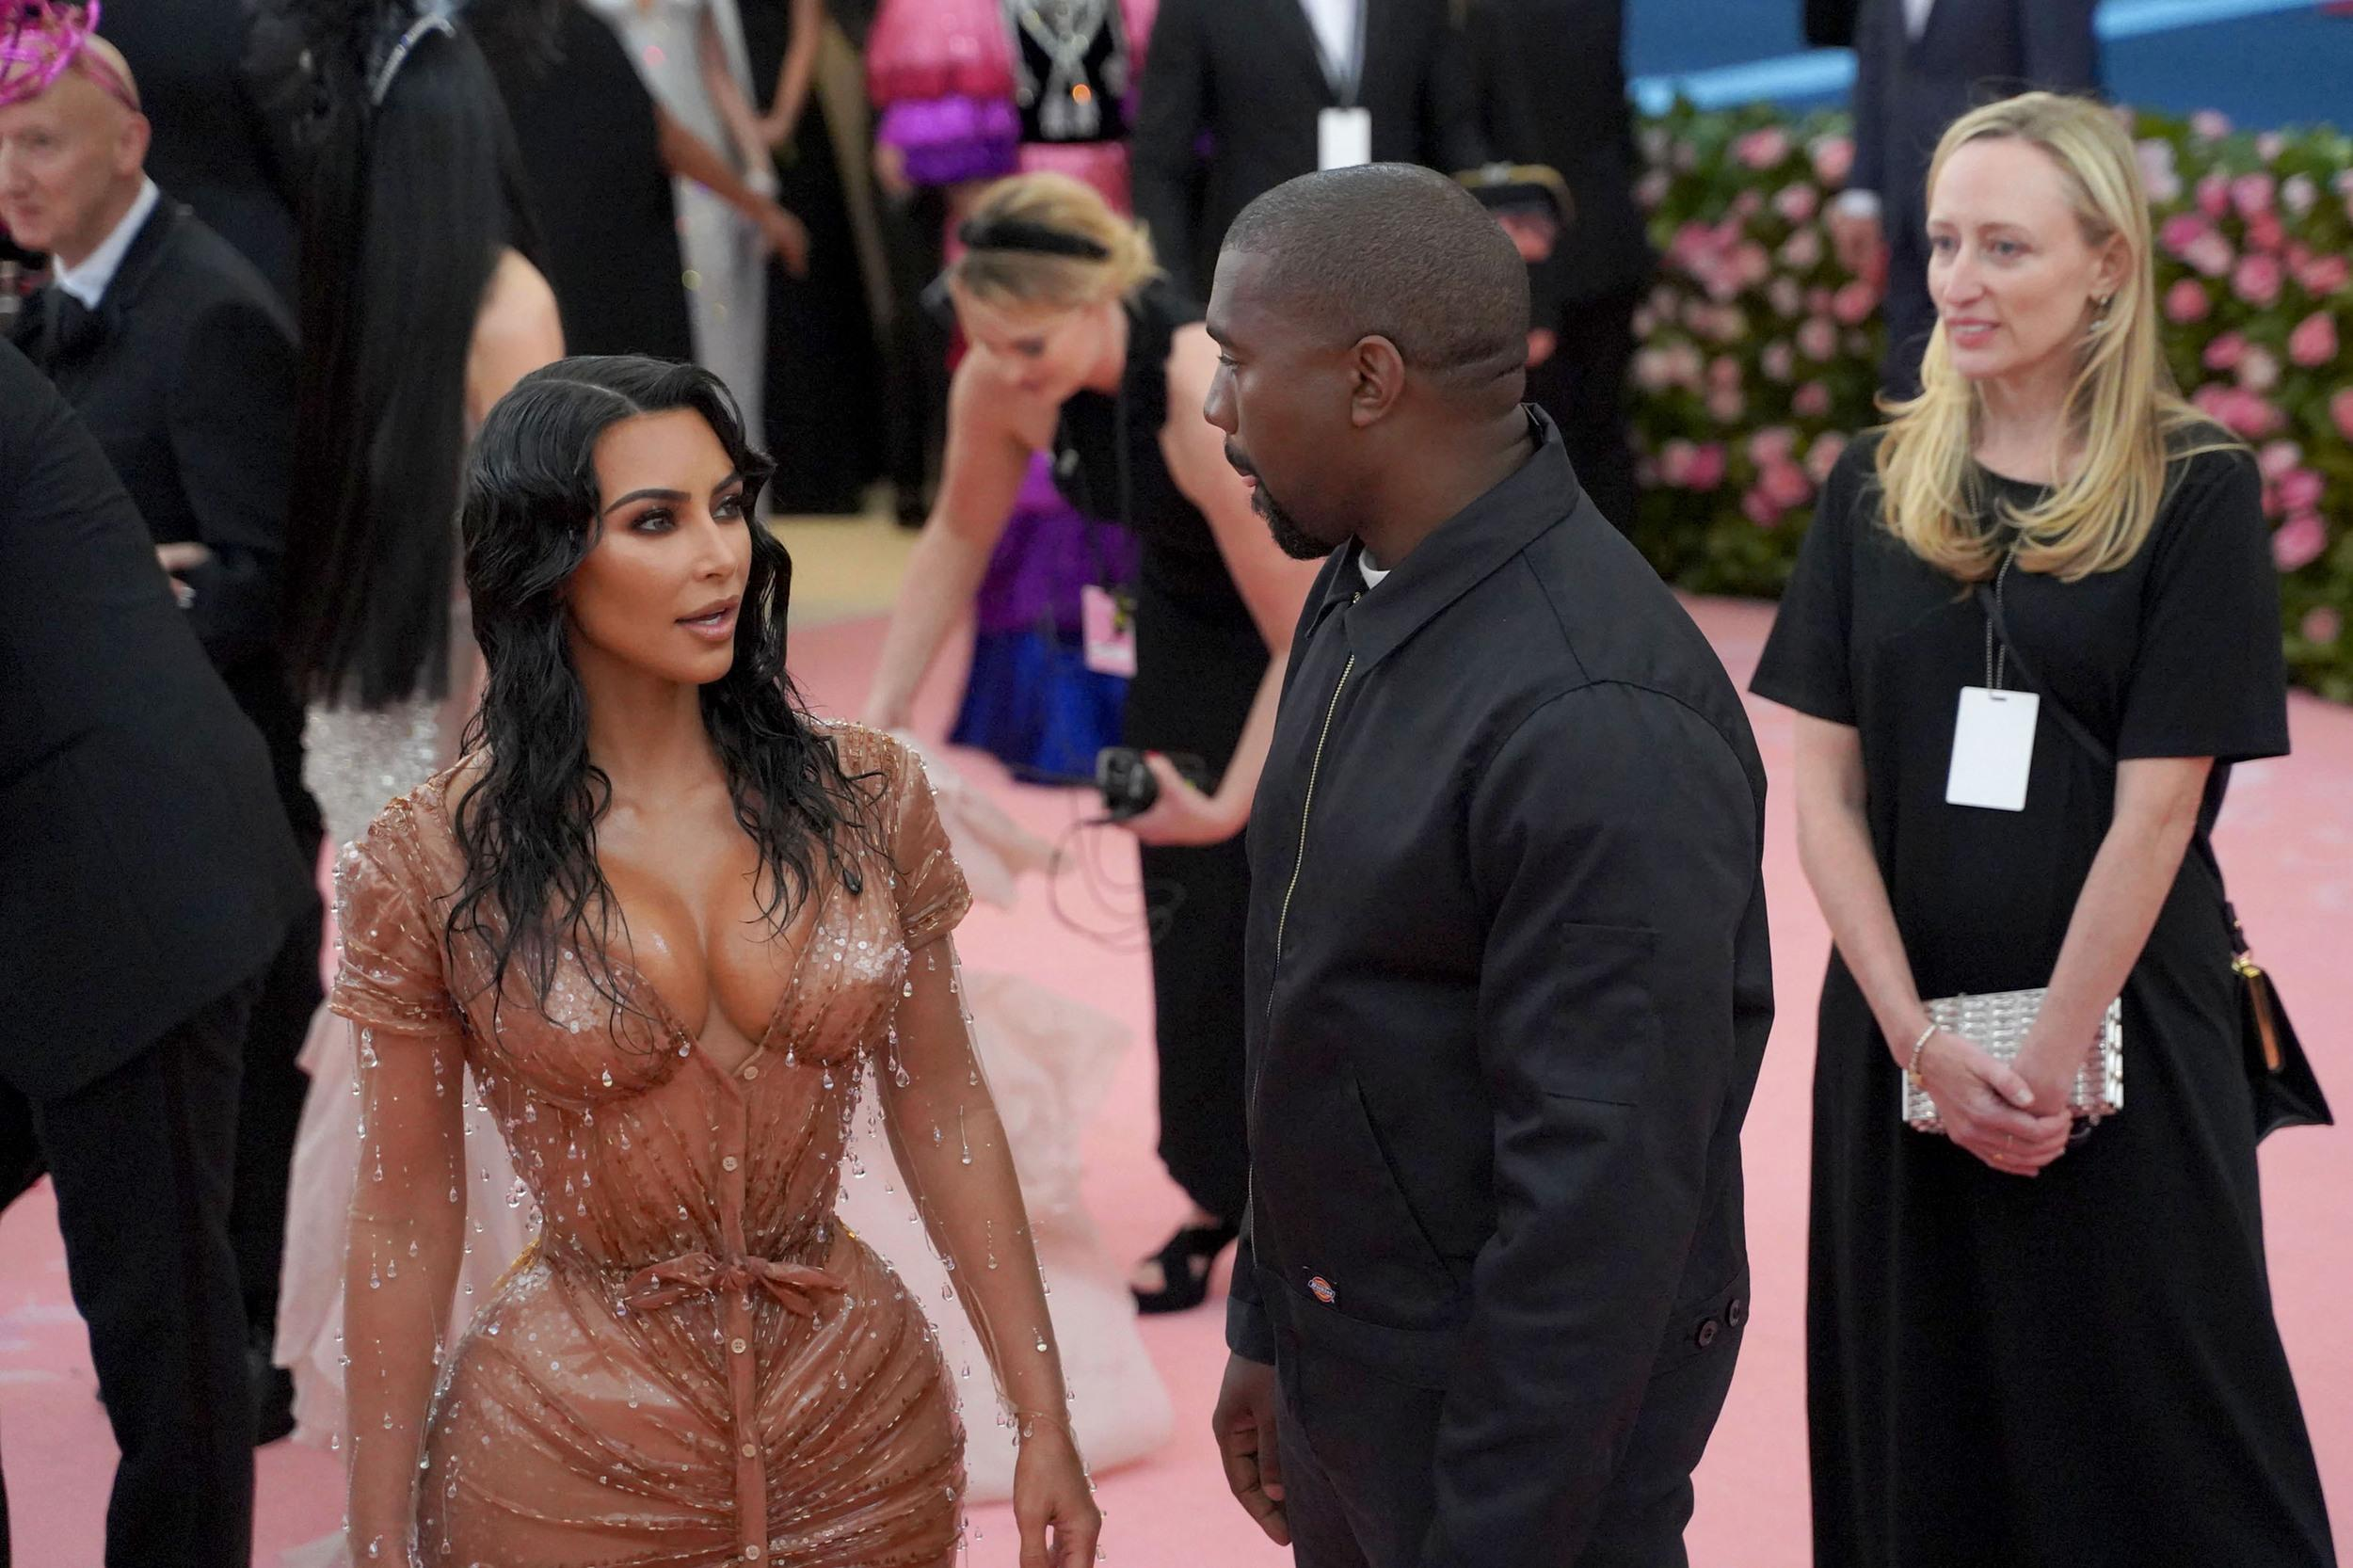 """NEW YORK, NY - MAY 6: Kim Kardashian West attends The Metropolitan Museum Of Art's 2019 Costume Institute Benefit """"Camp: Notes On Fashion"""" at Metropolitan Museum of Art on May 6, 2019 in New York City. (Photo by Sean Zanni/Patrick McMullan via Getty Images)"""